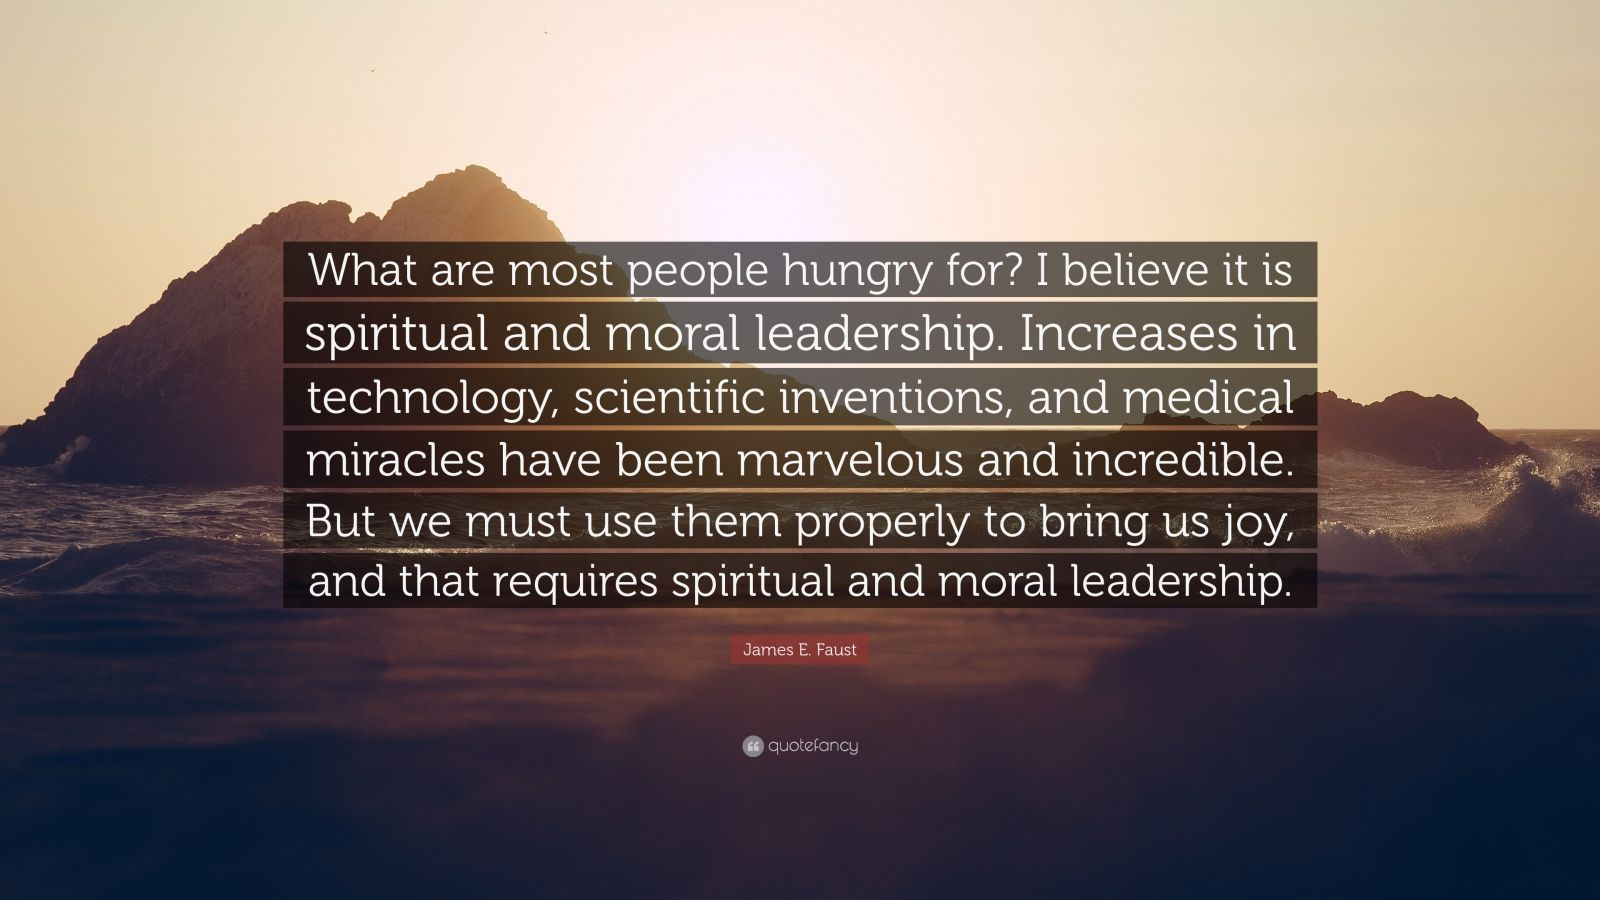 "James E. Faust Quote: ""What are most people hungry for? I believe it is spiritual and moral leadership. Increases in technology, scientific inventions, and medical miracles have been marvelous and incredible. But we must use them properly to bring us joy, and that requires spiritual and moral leadership."""